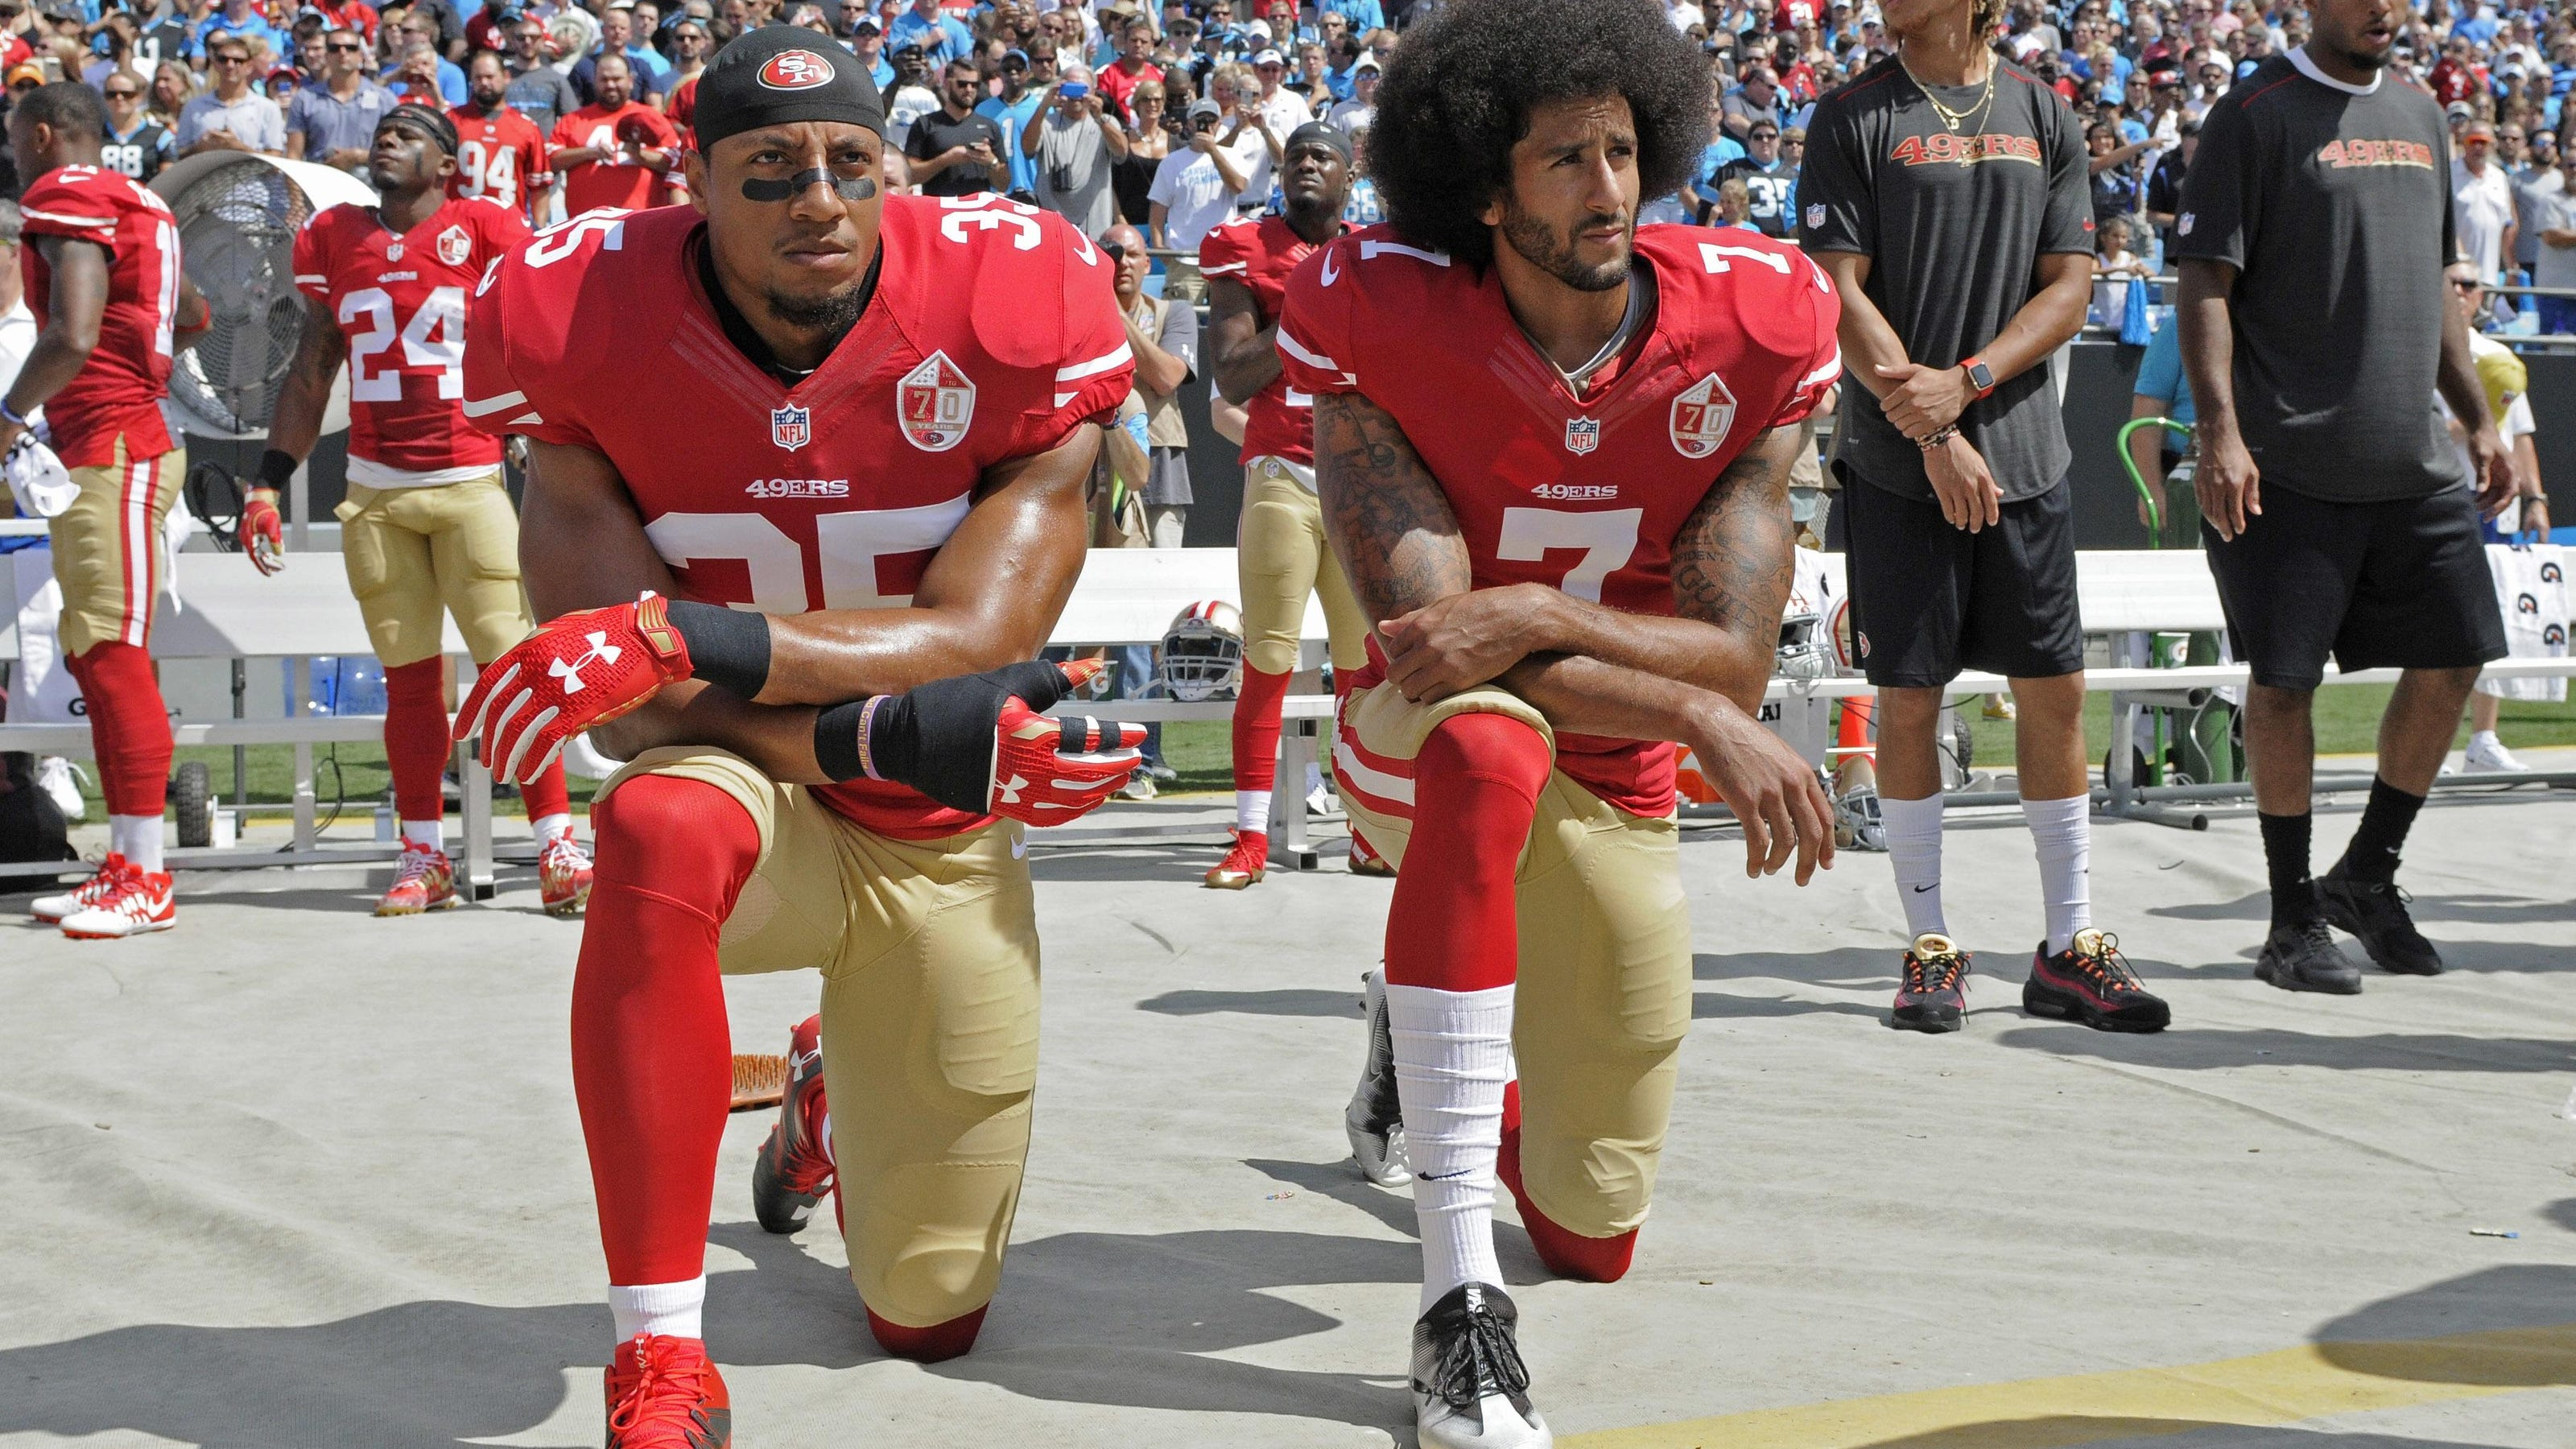 Protests should not include disrespecting America's flag: Letter